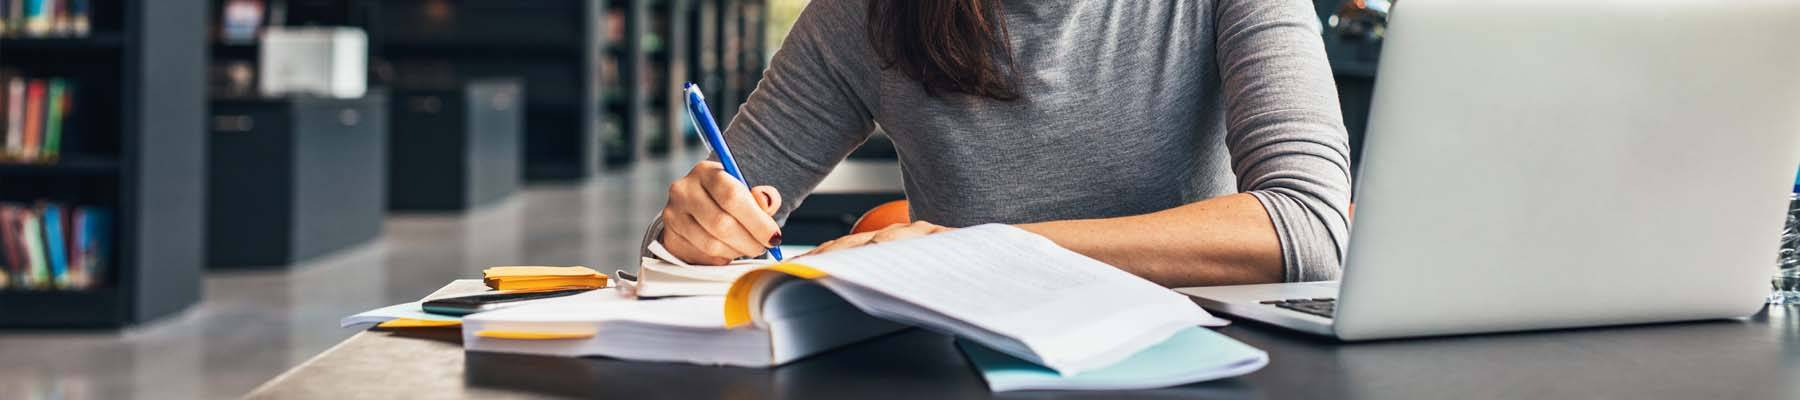 Top Reasons for Study Social Work Courses in Australia